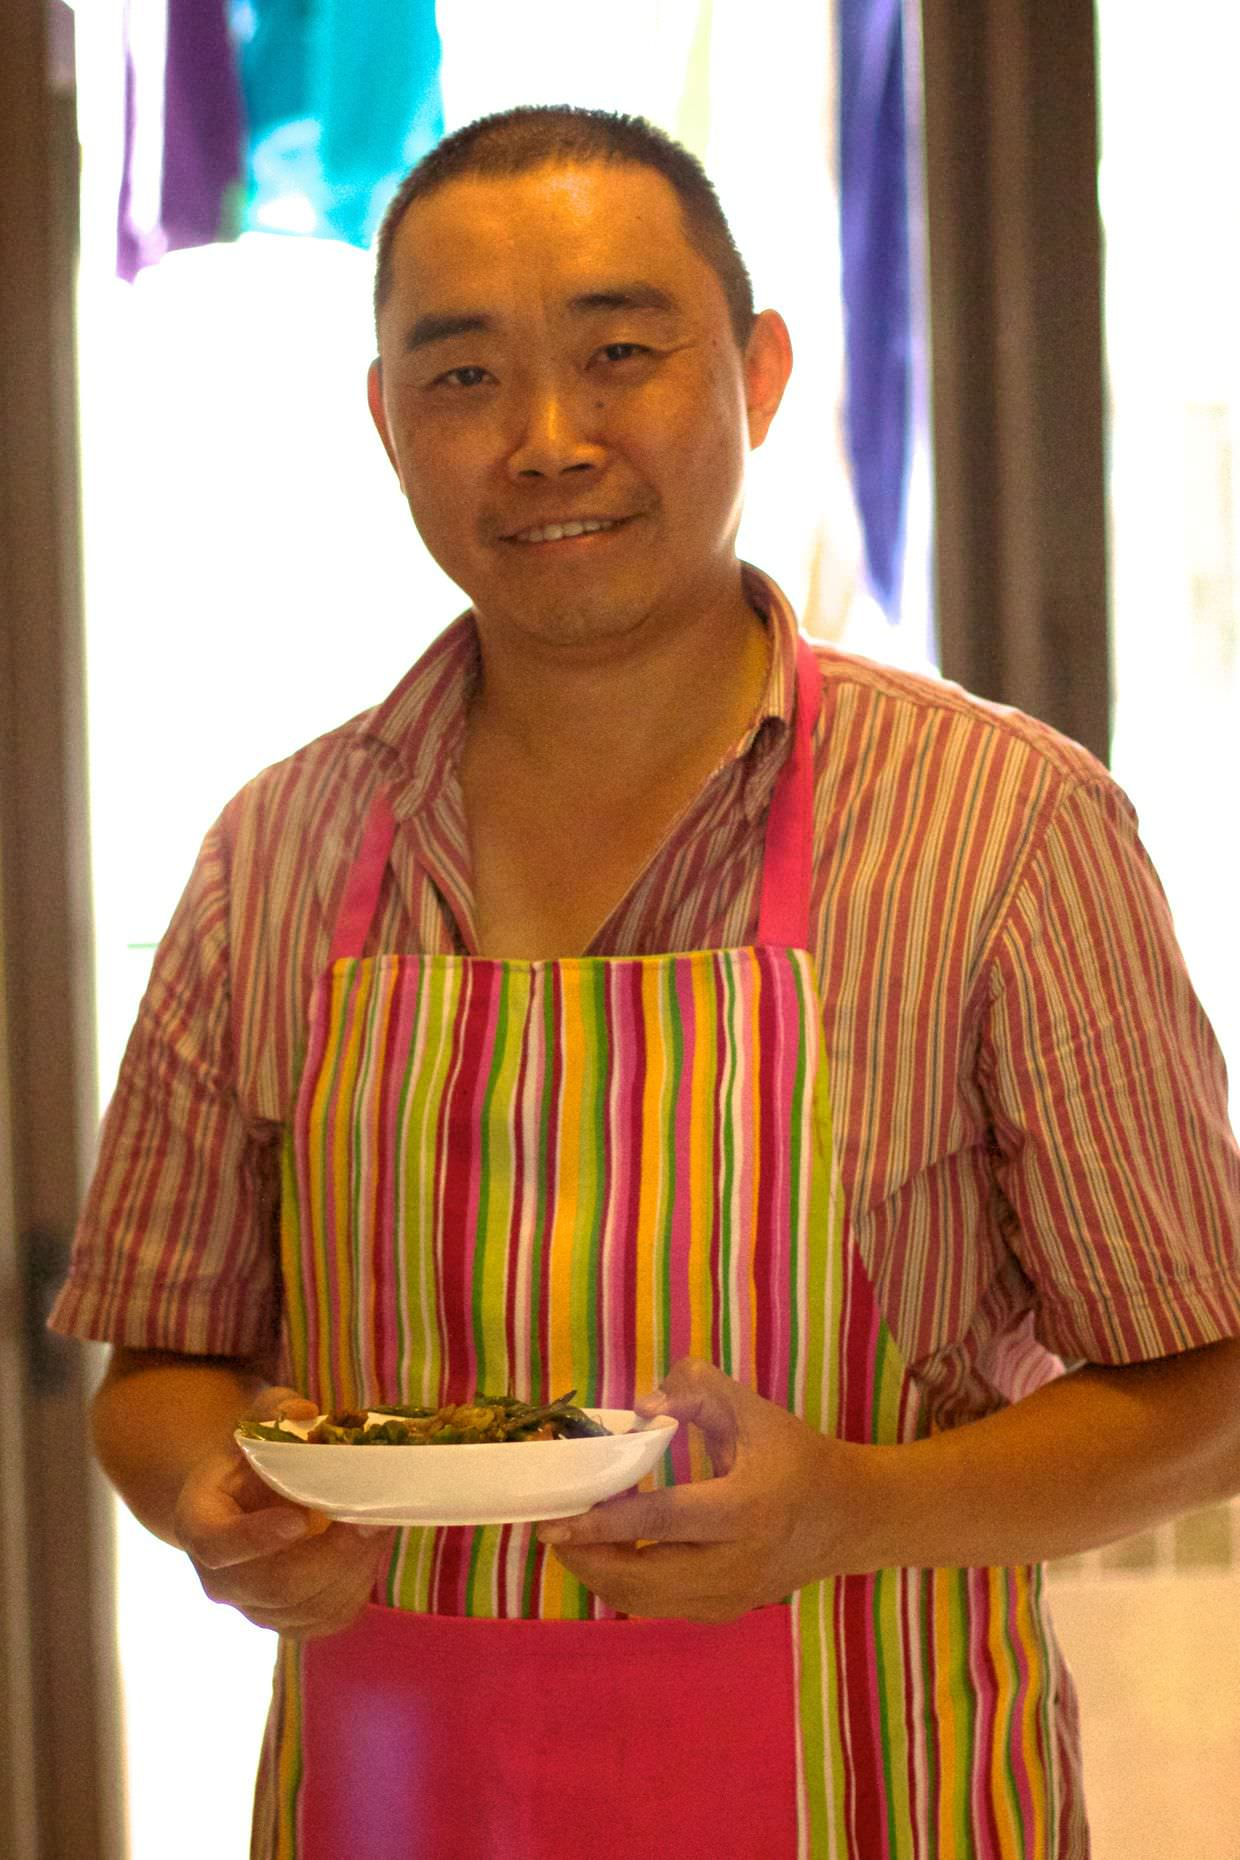 Sam, our chef